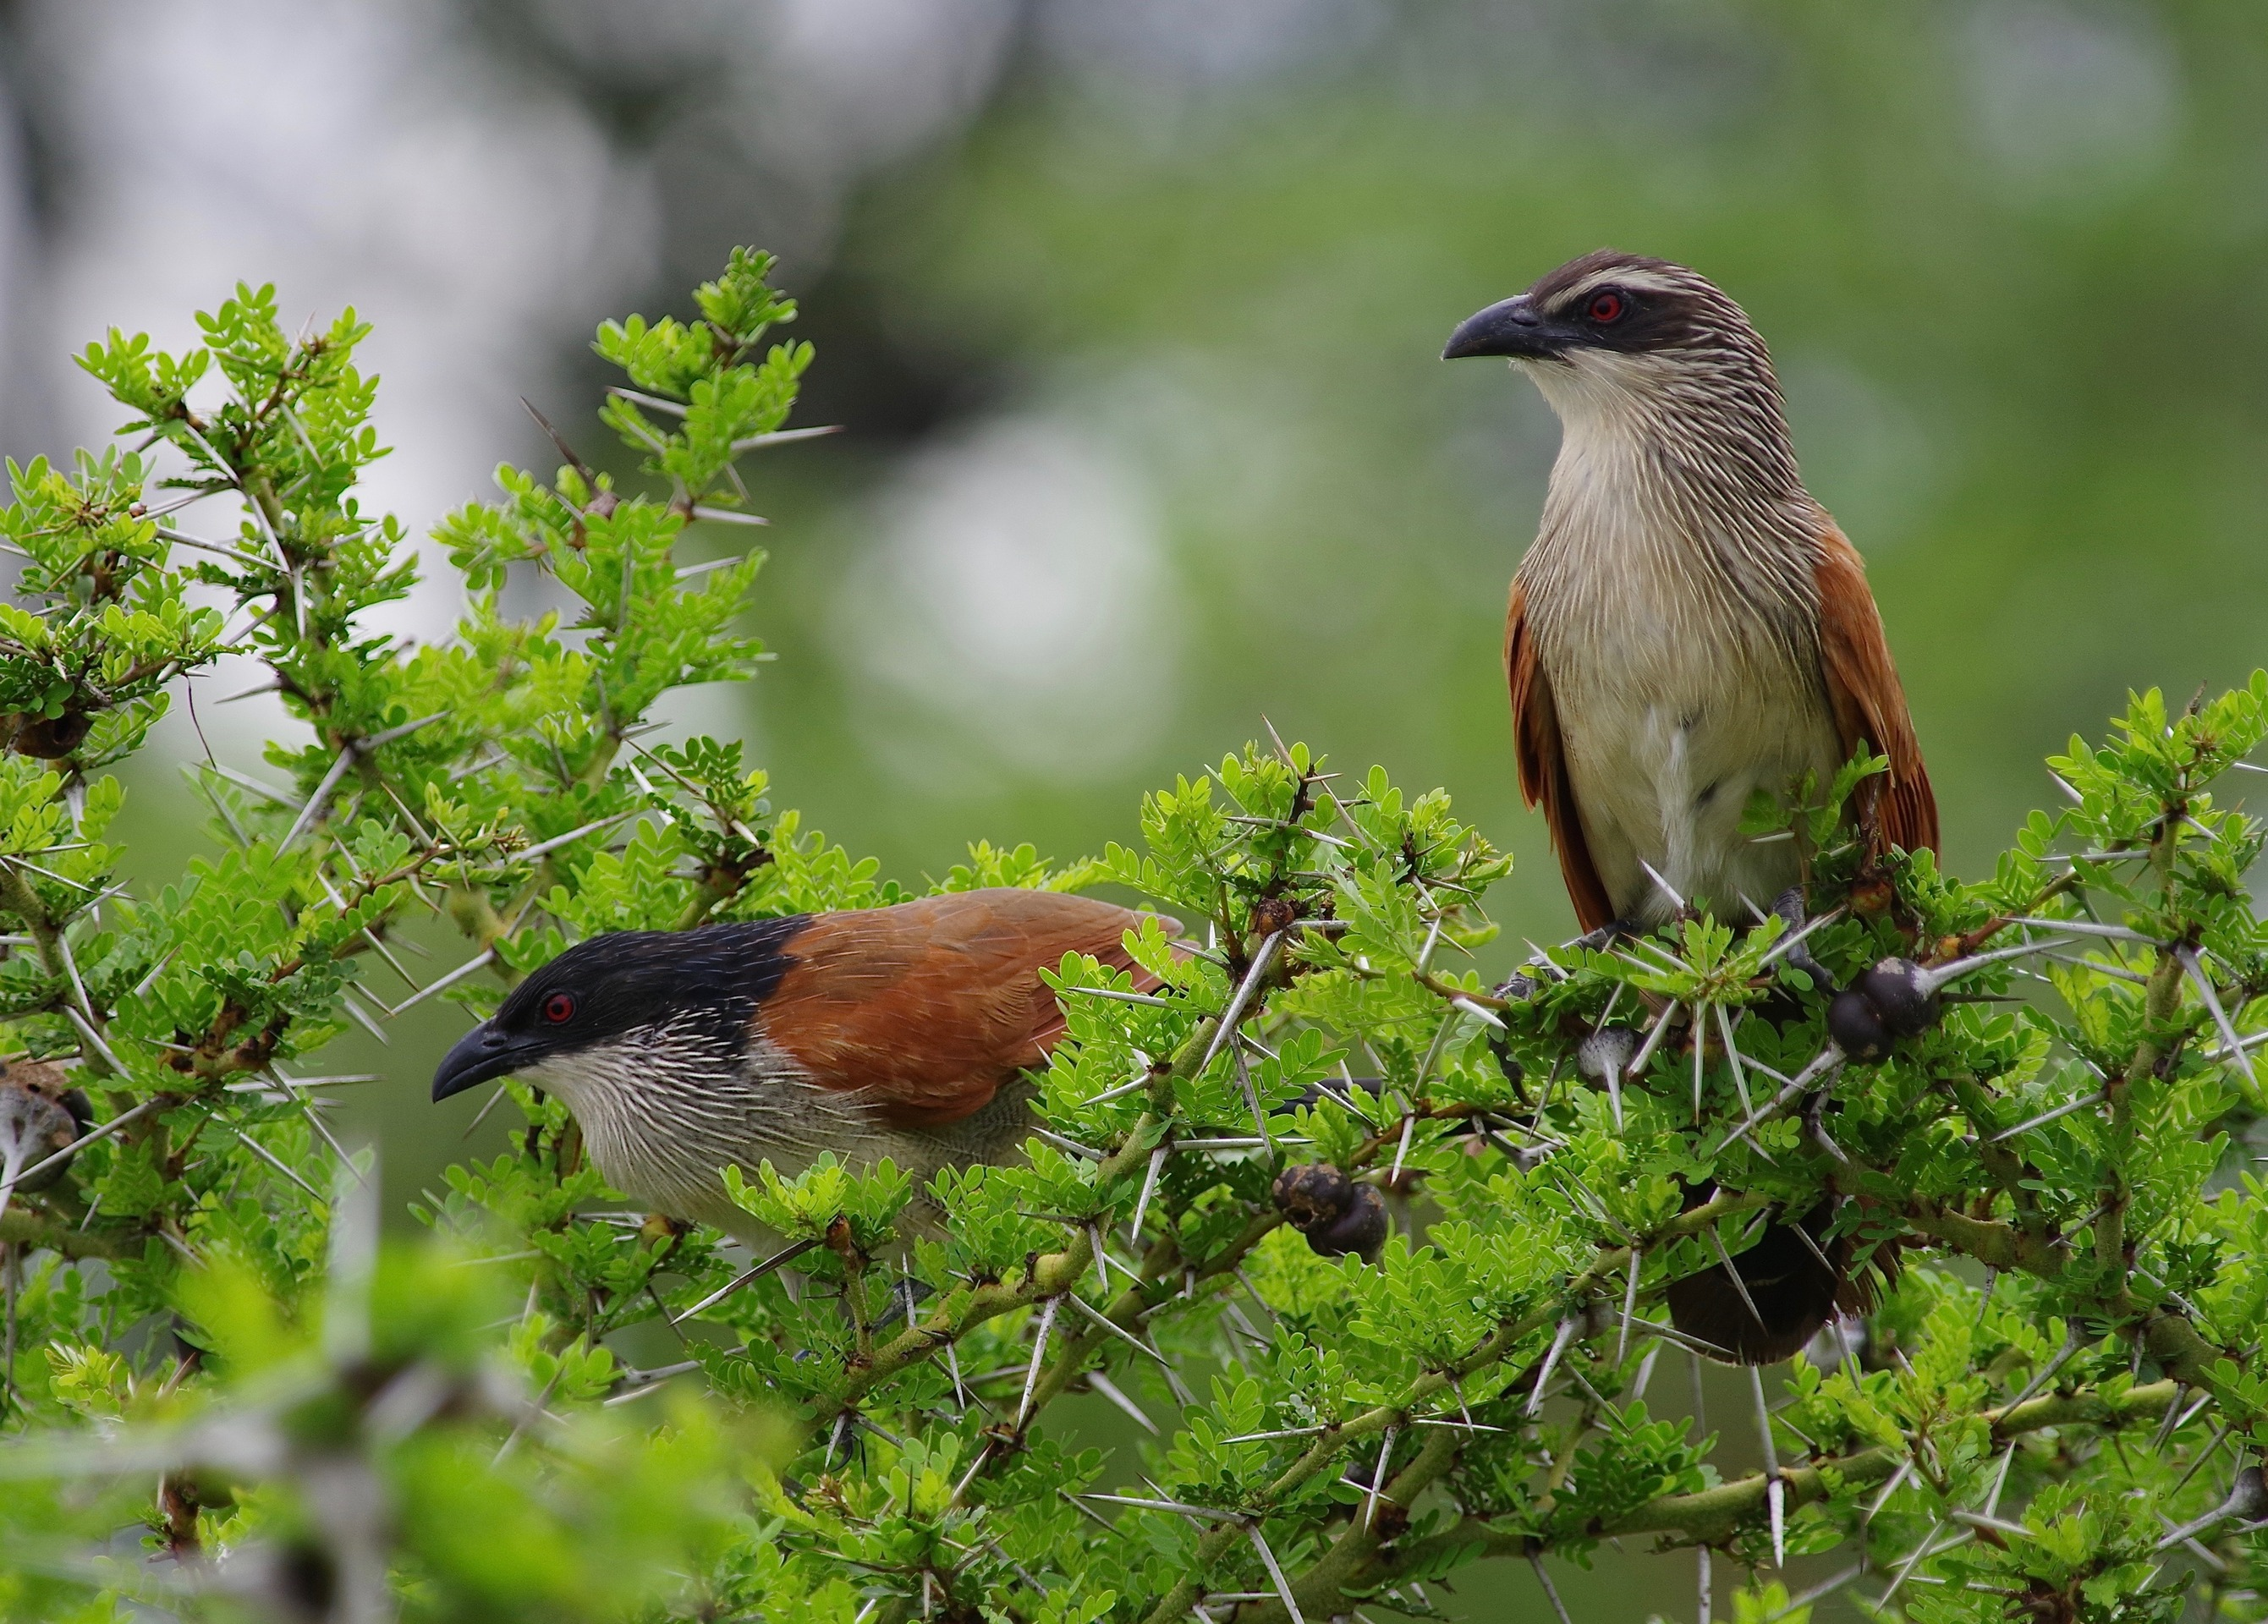 White-browed Coucal + hybrid mellan dito och Burchell's